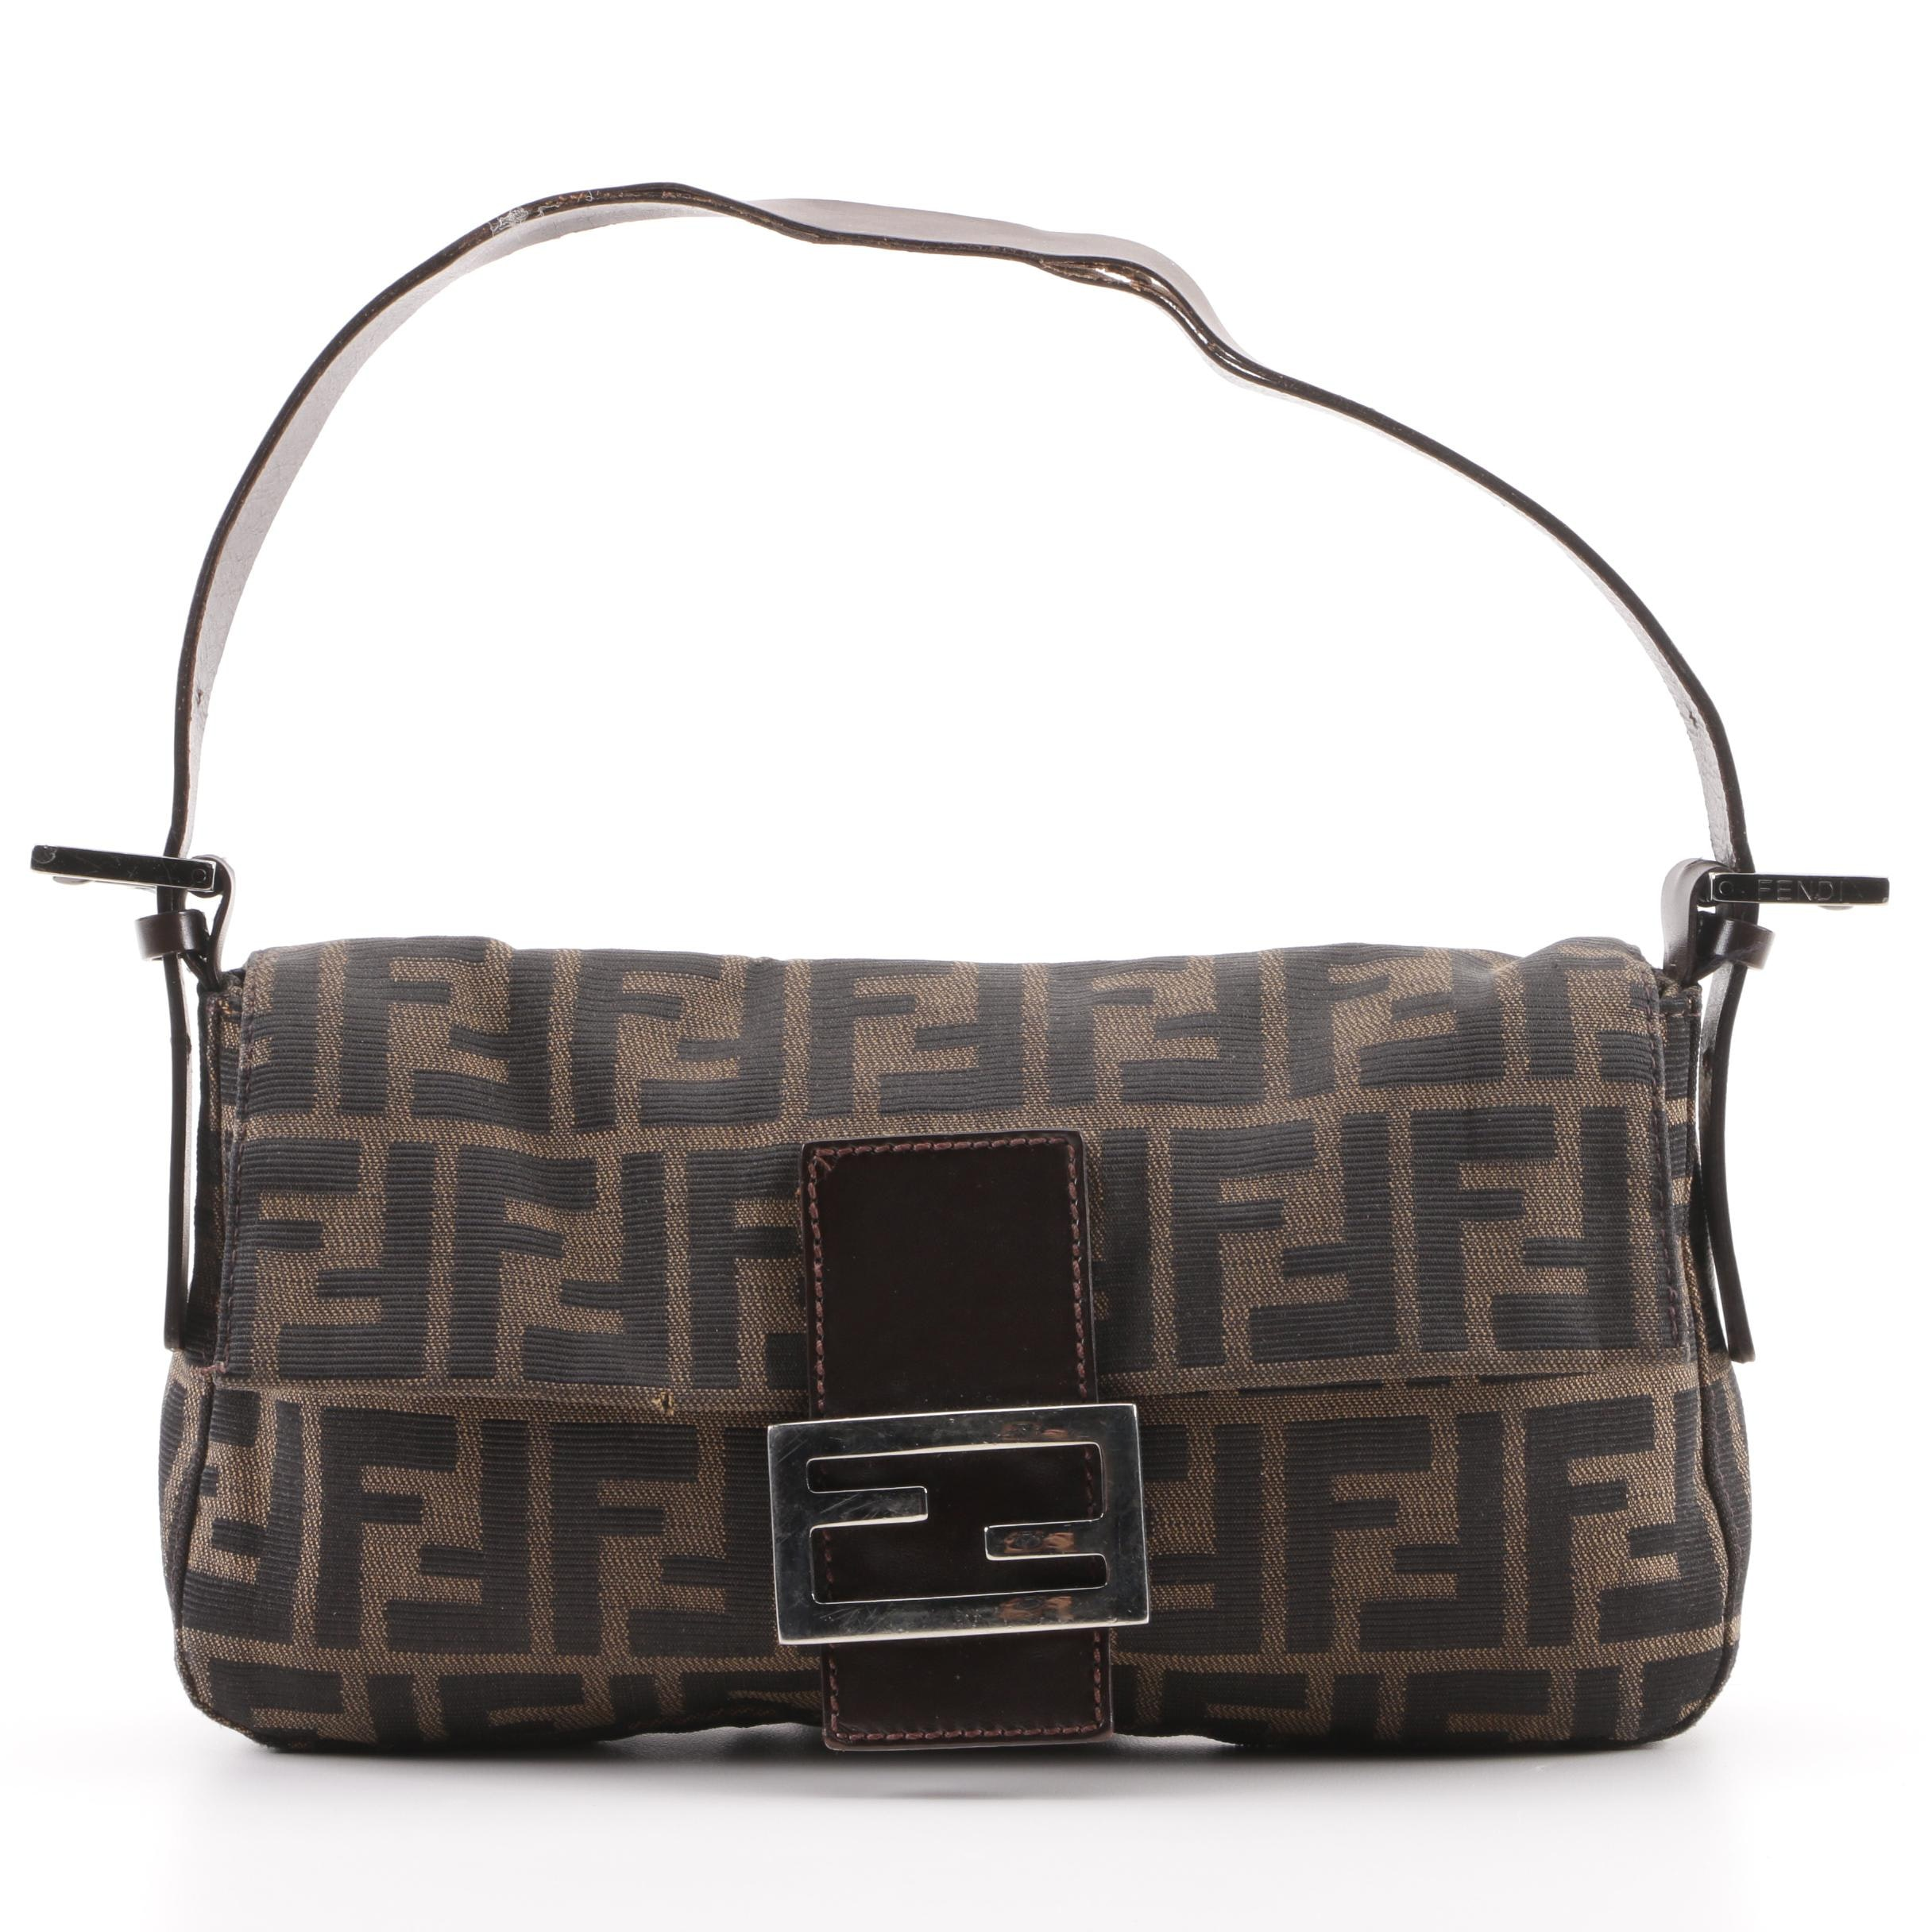 Fendi Zucca Canvas and Dark Brown Leather Baguette